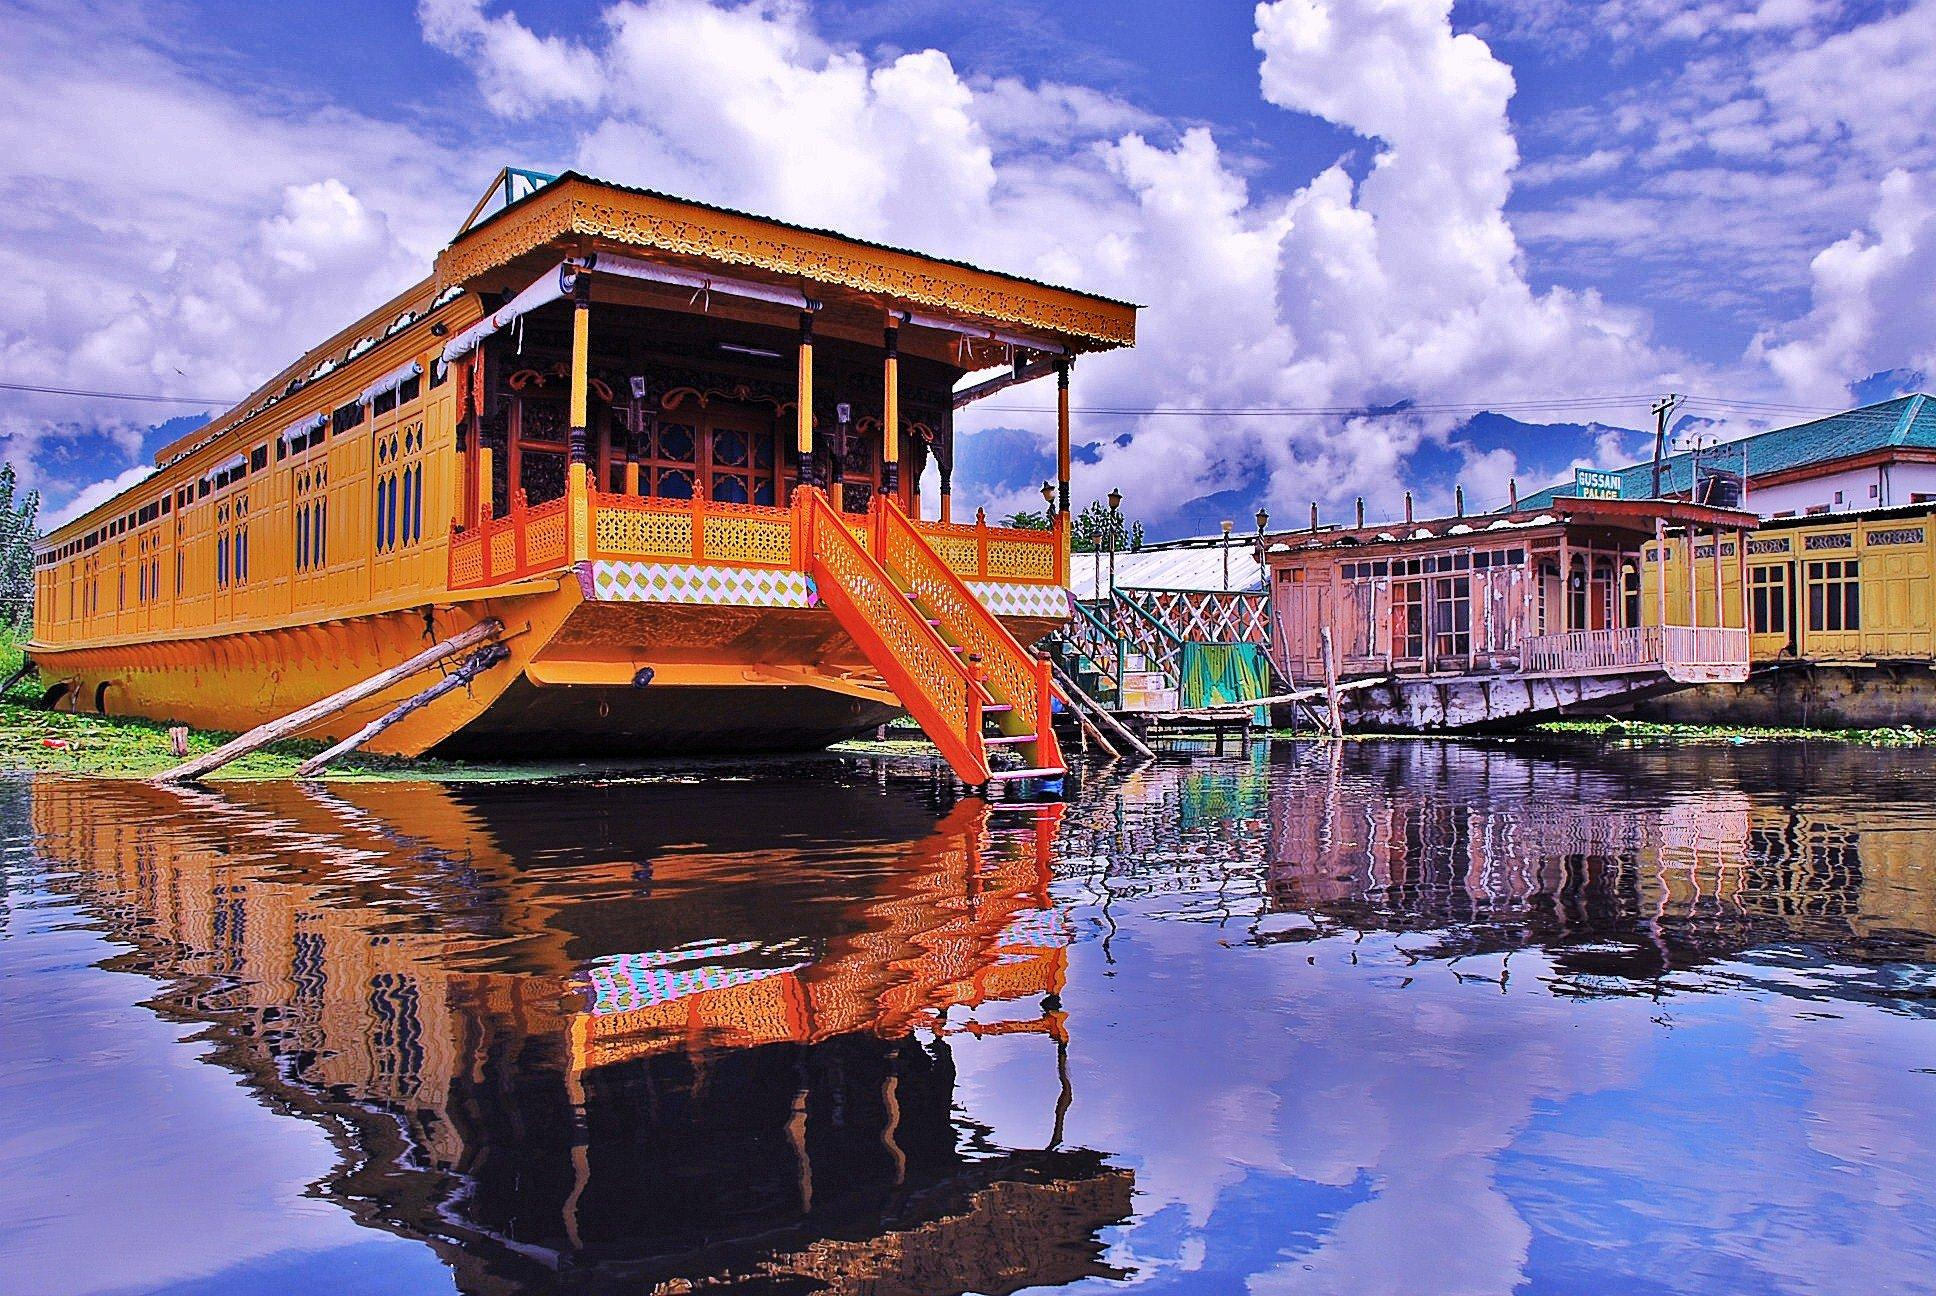 Jammu Kashmir tour packages from Hyderabad, Honeymoon & Family tour packages Operator in Hyd, Best Jammu Kashmir tour packages for couples from Hyd, Tour operators for Kashmir